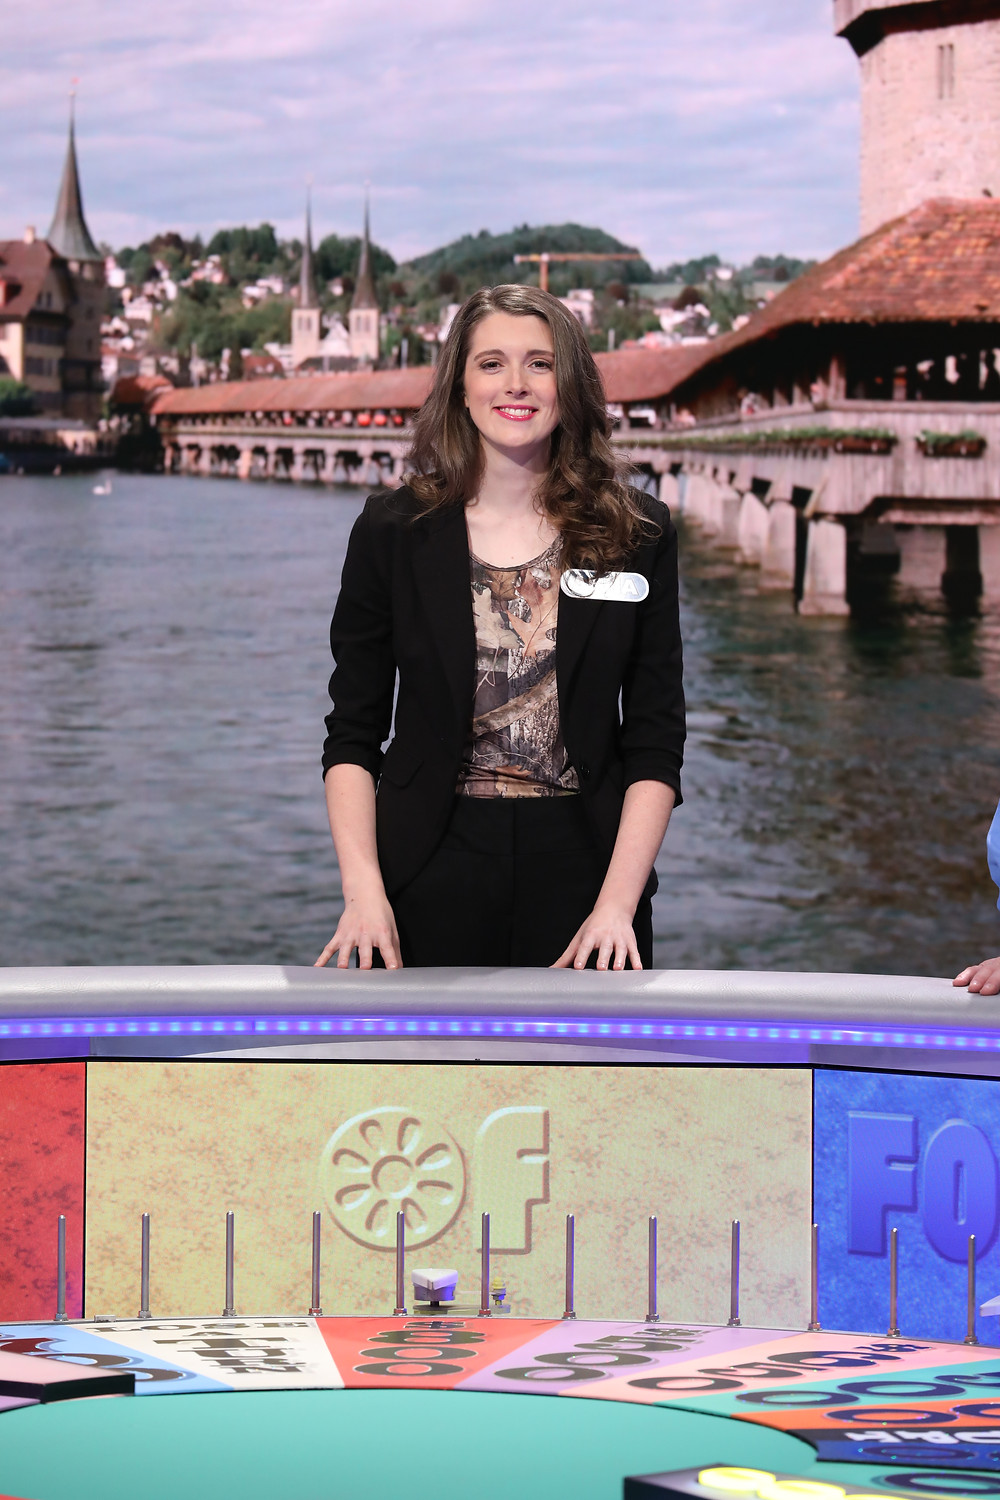 AnnaTheArcher appears on Wheel of Fortune